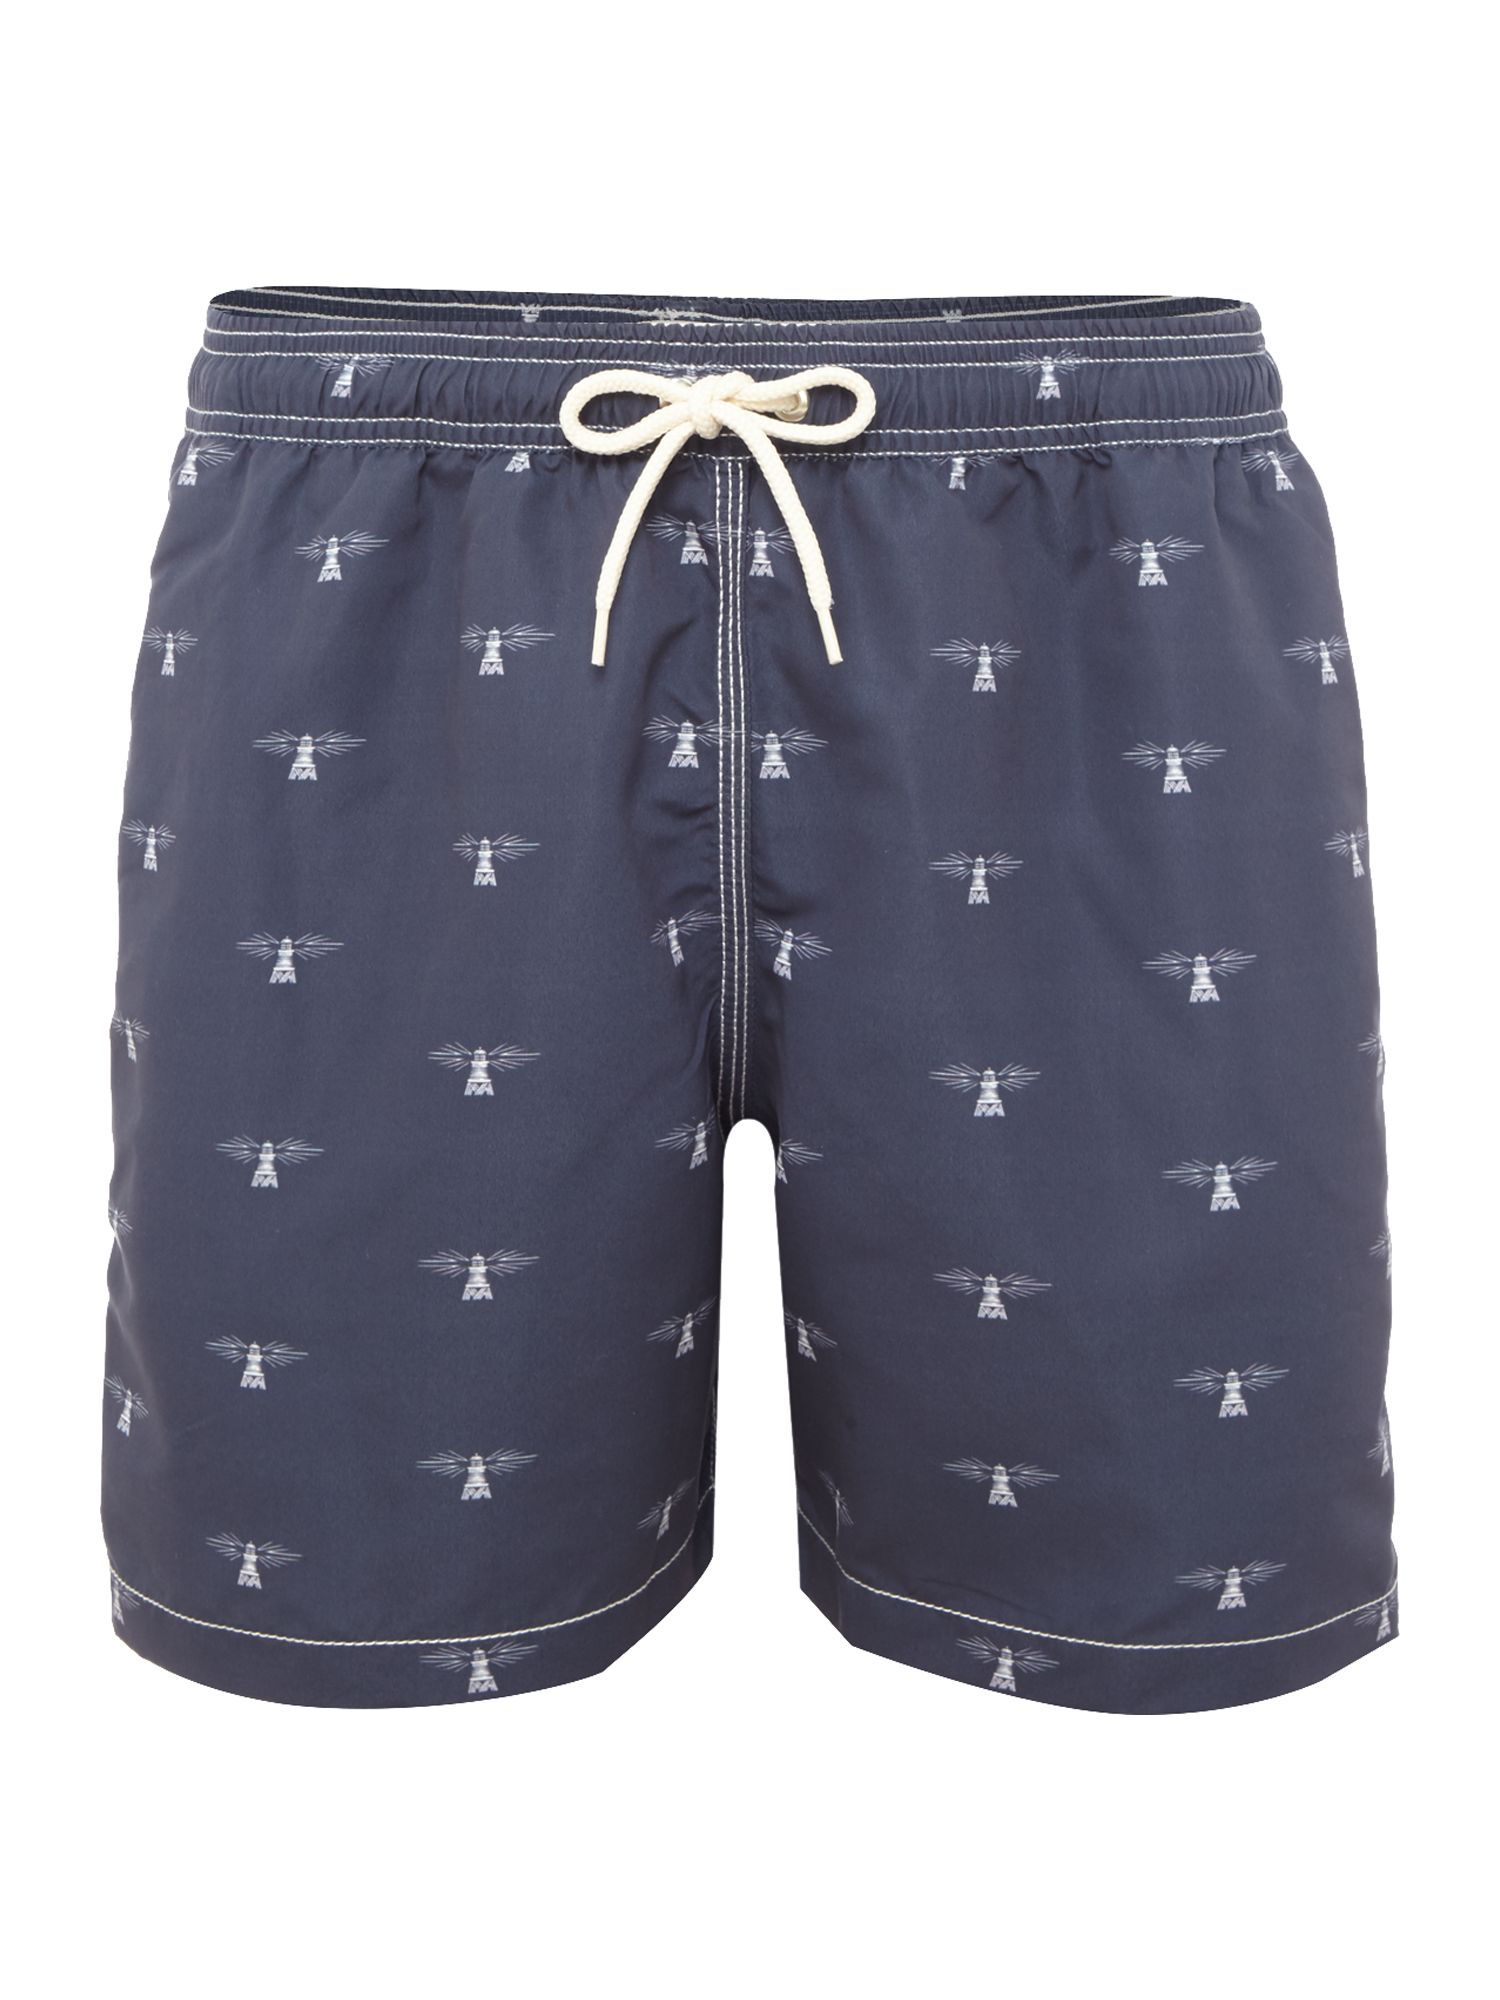 Men's Barbour Beacon Print Swim Shorts, Blue